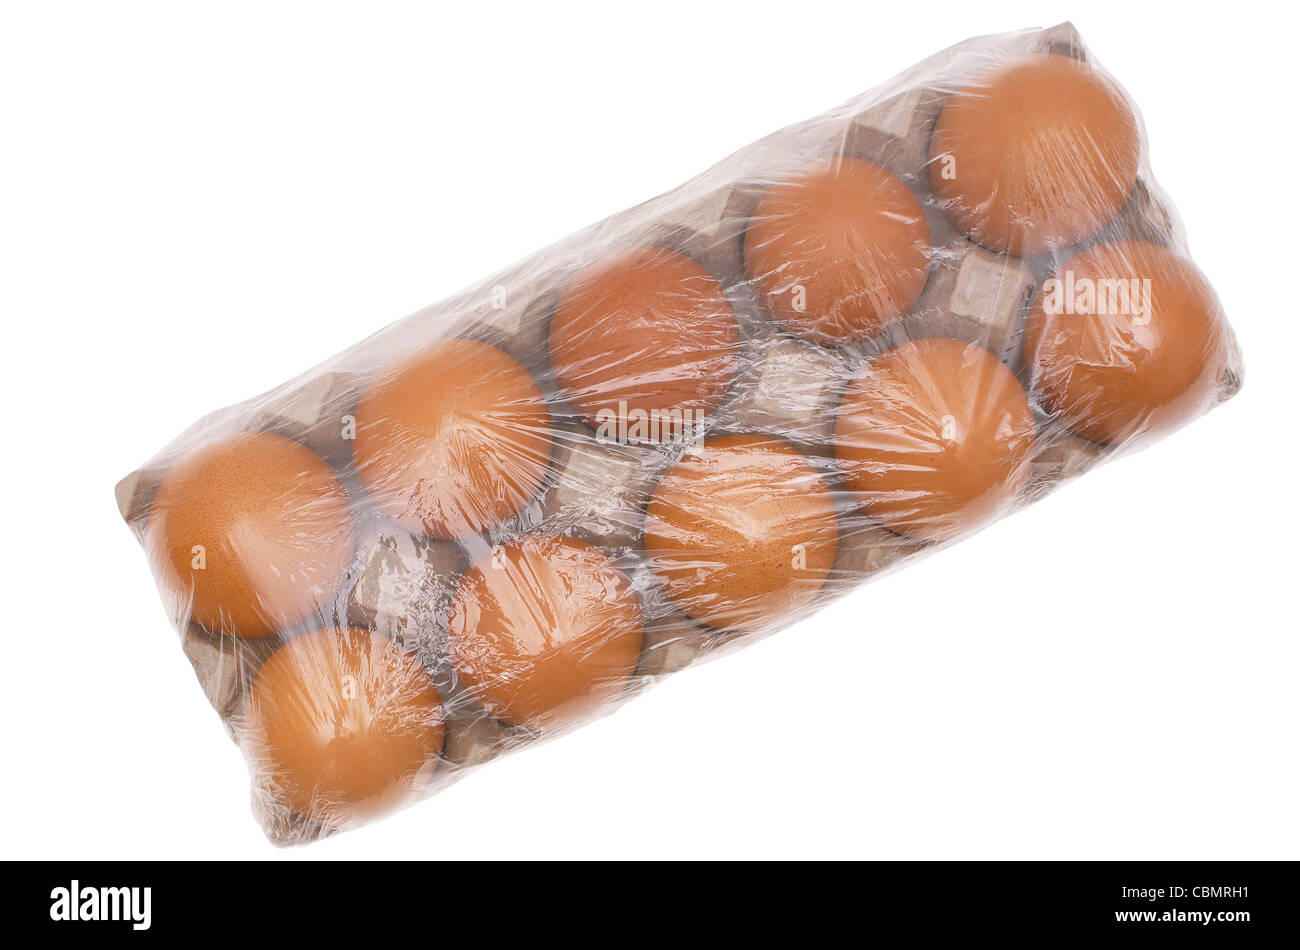 Eggs packed by transparent plastic. - Stock Image